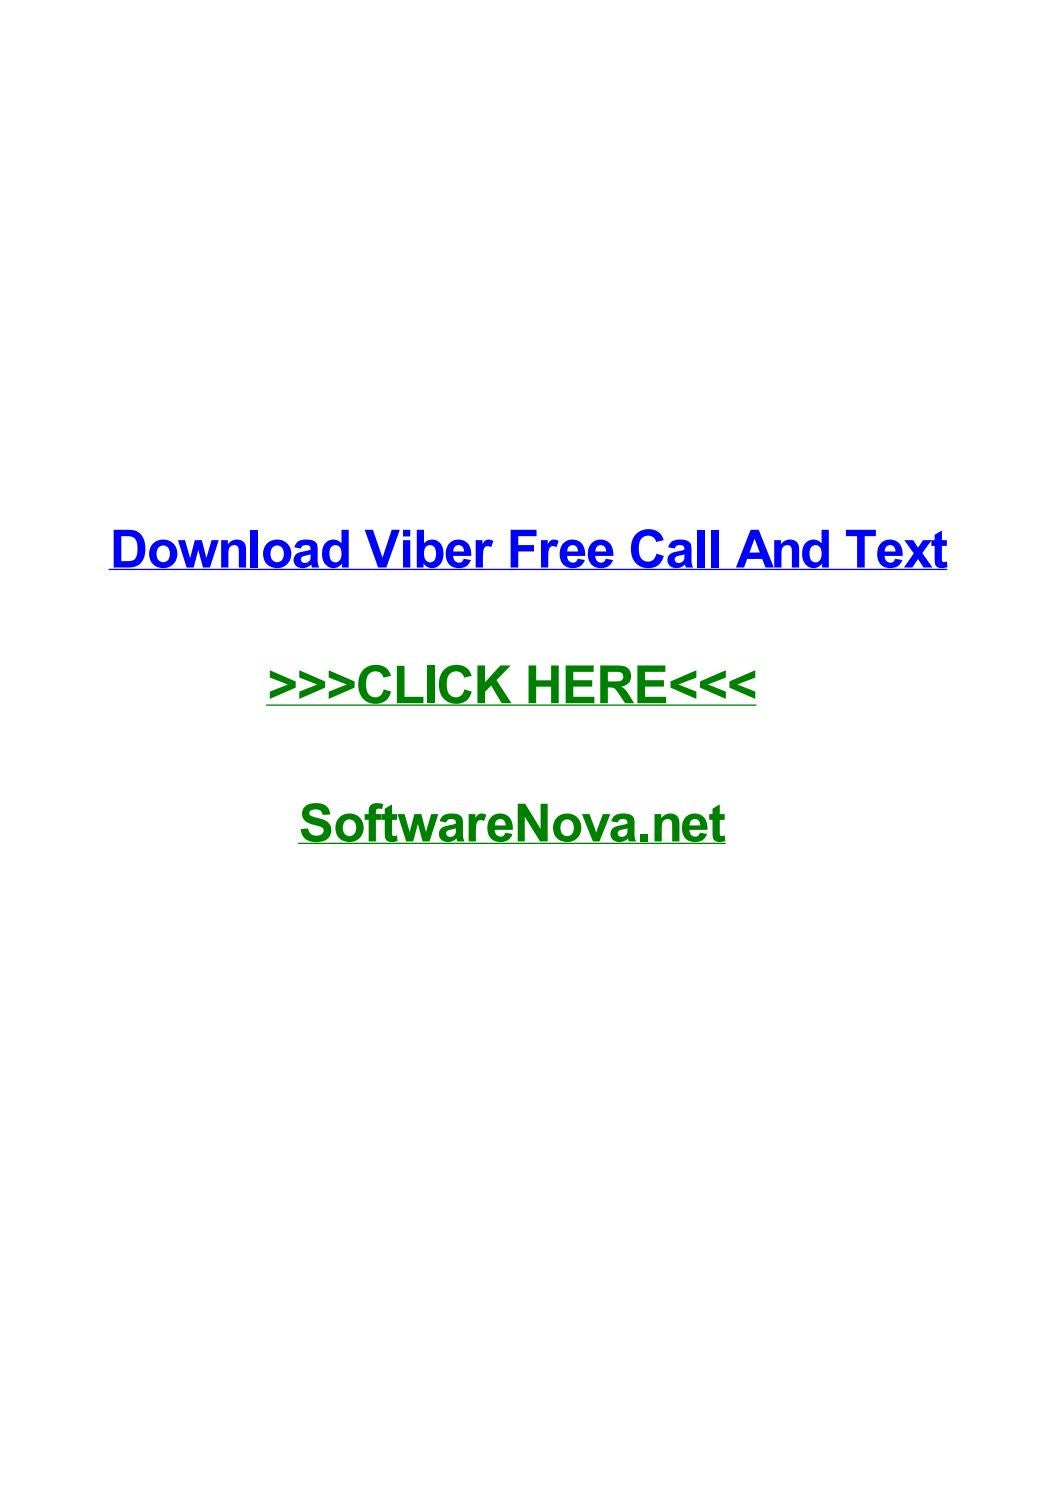 How to download viber on sony ericsson xperia.